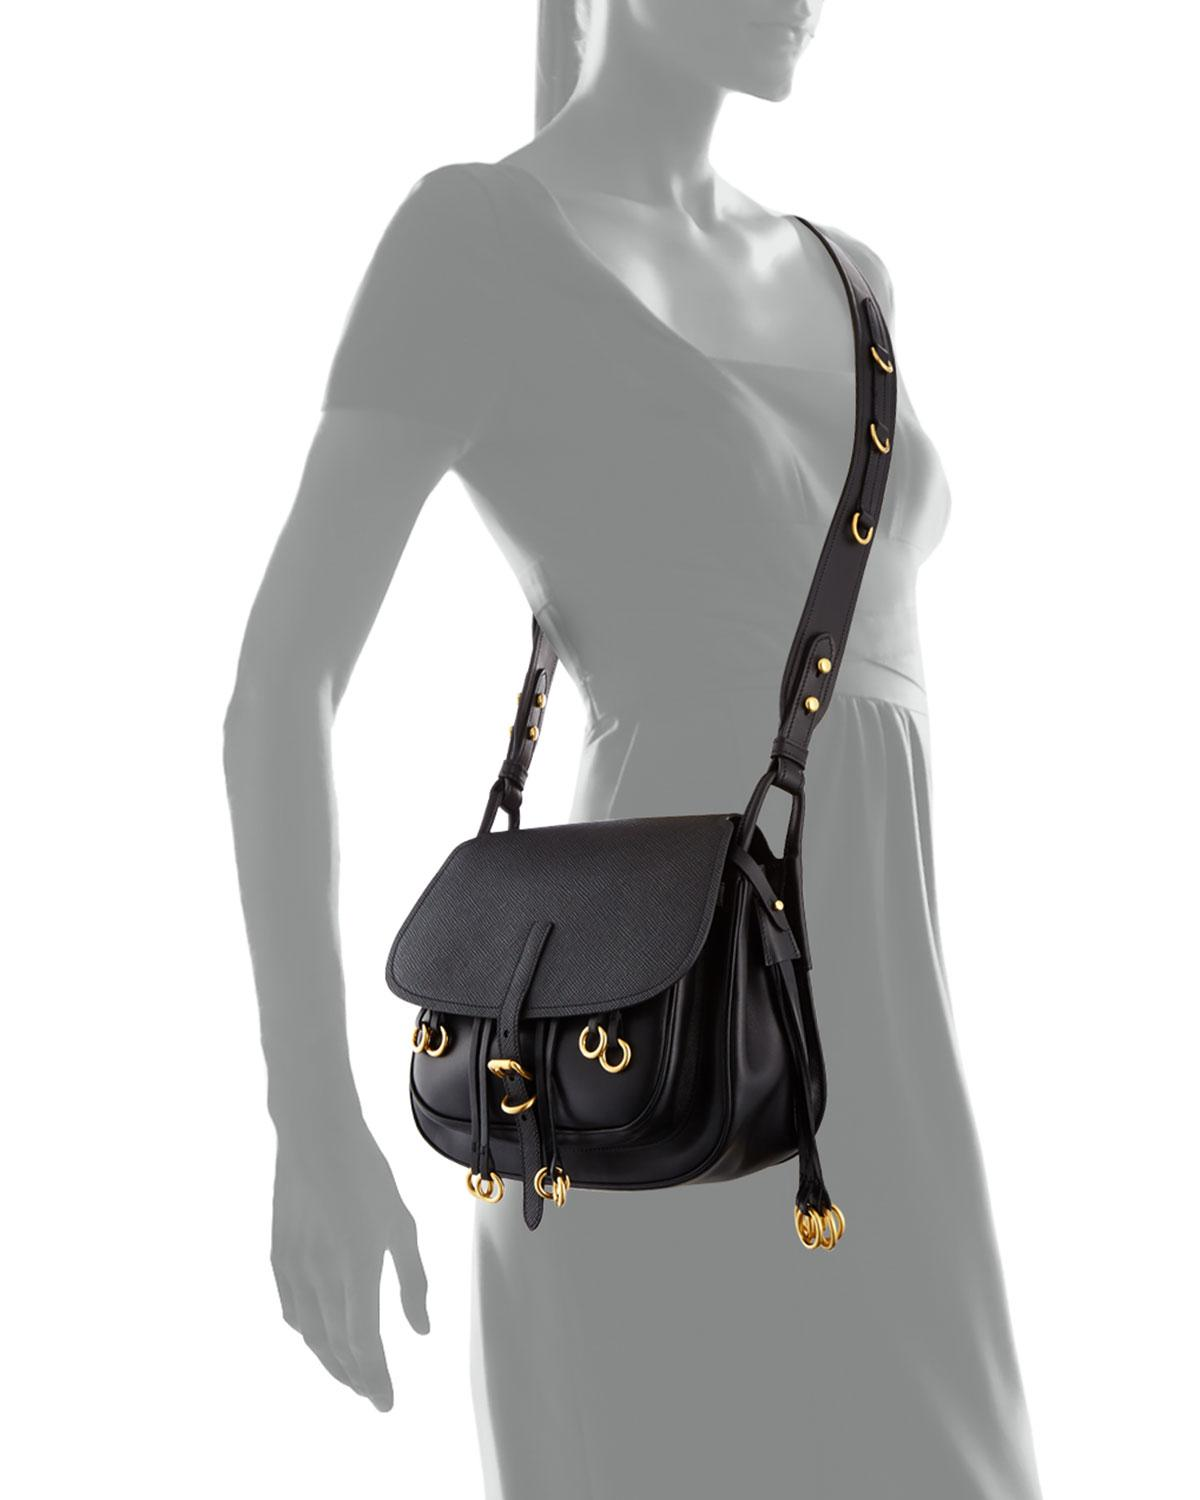 8b295b8943b0 Gallery. Previously sold at: Bergdorf Goodman · Women's Saddle Bags Women's Leather  Bags